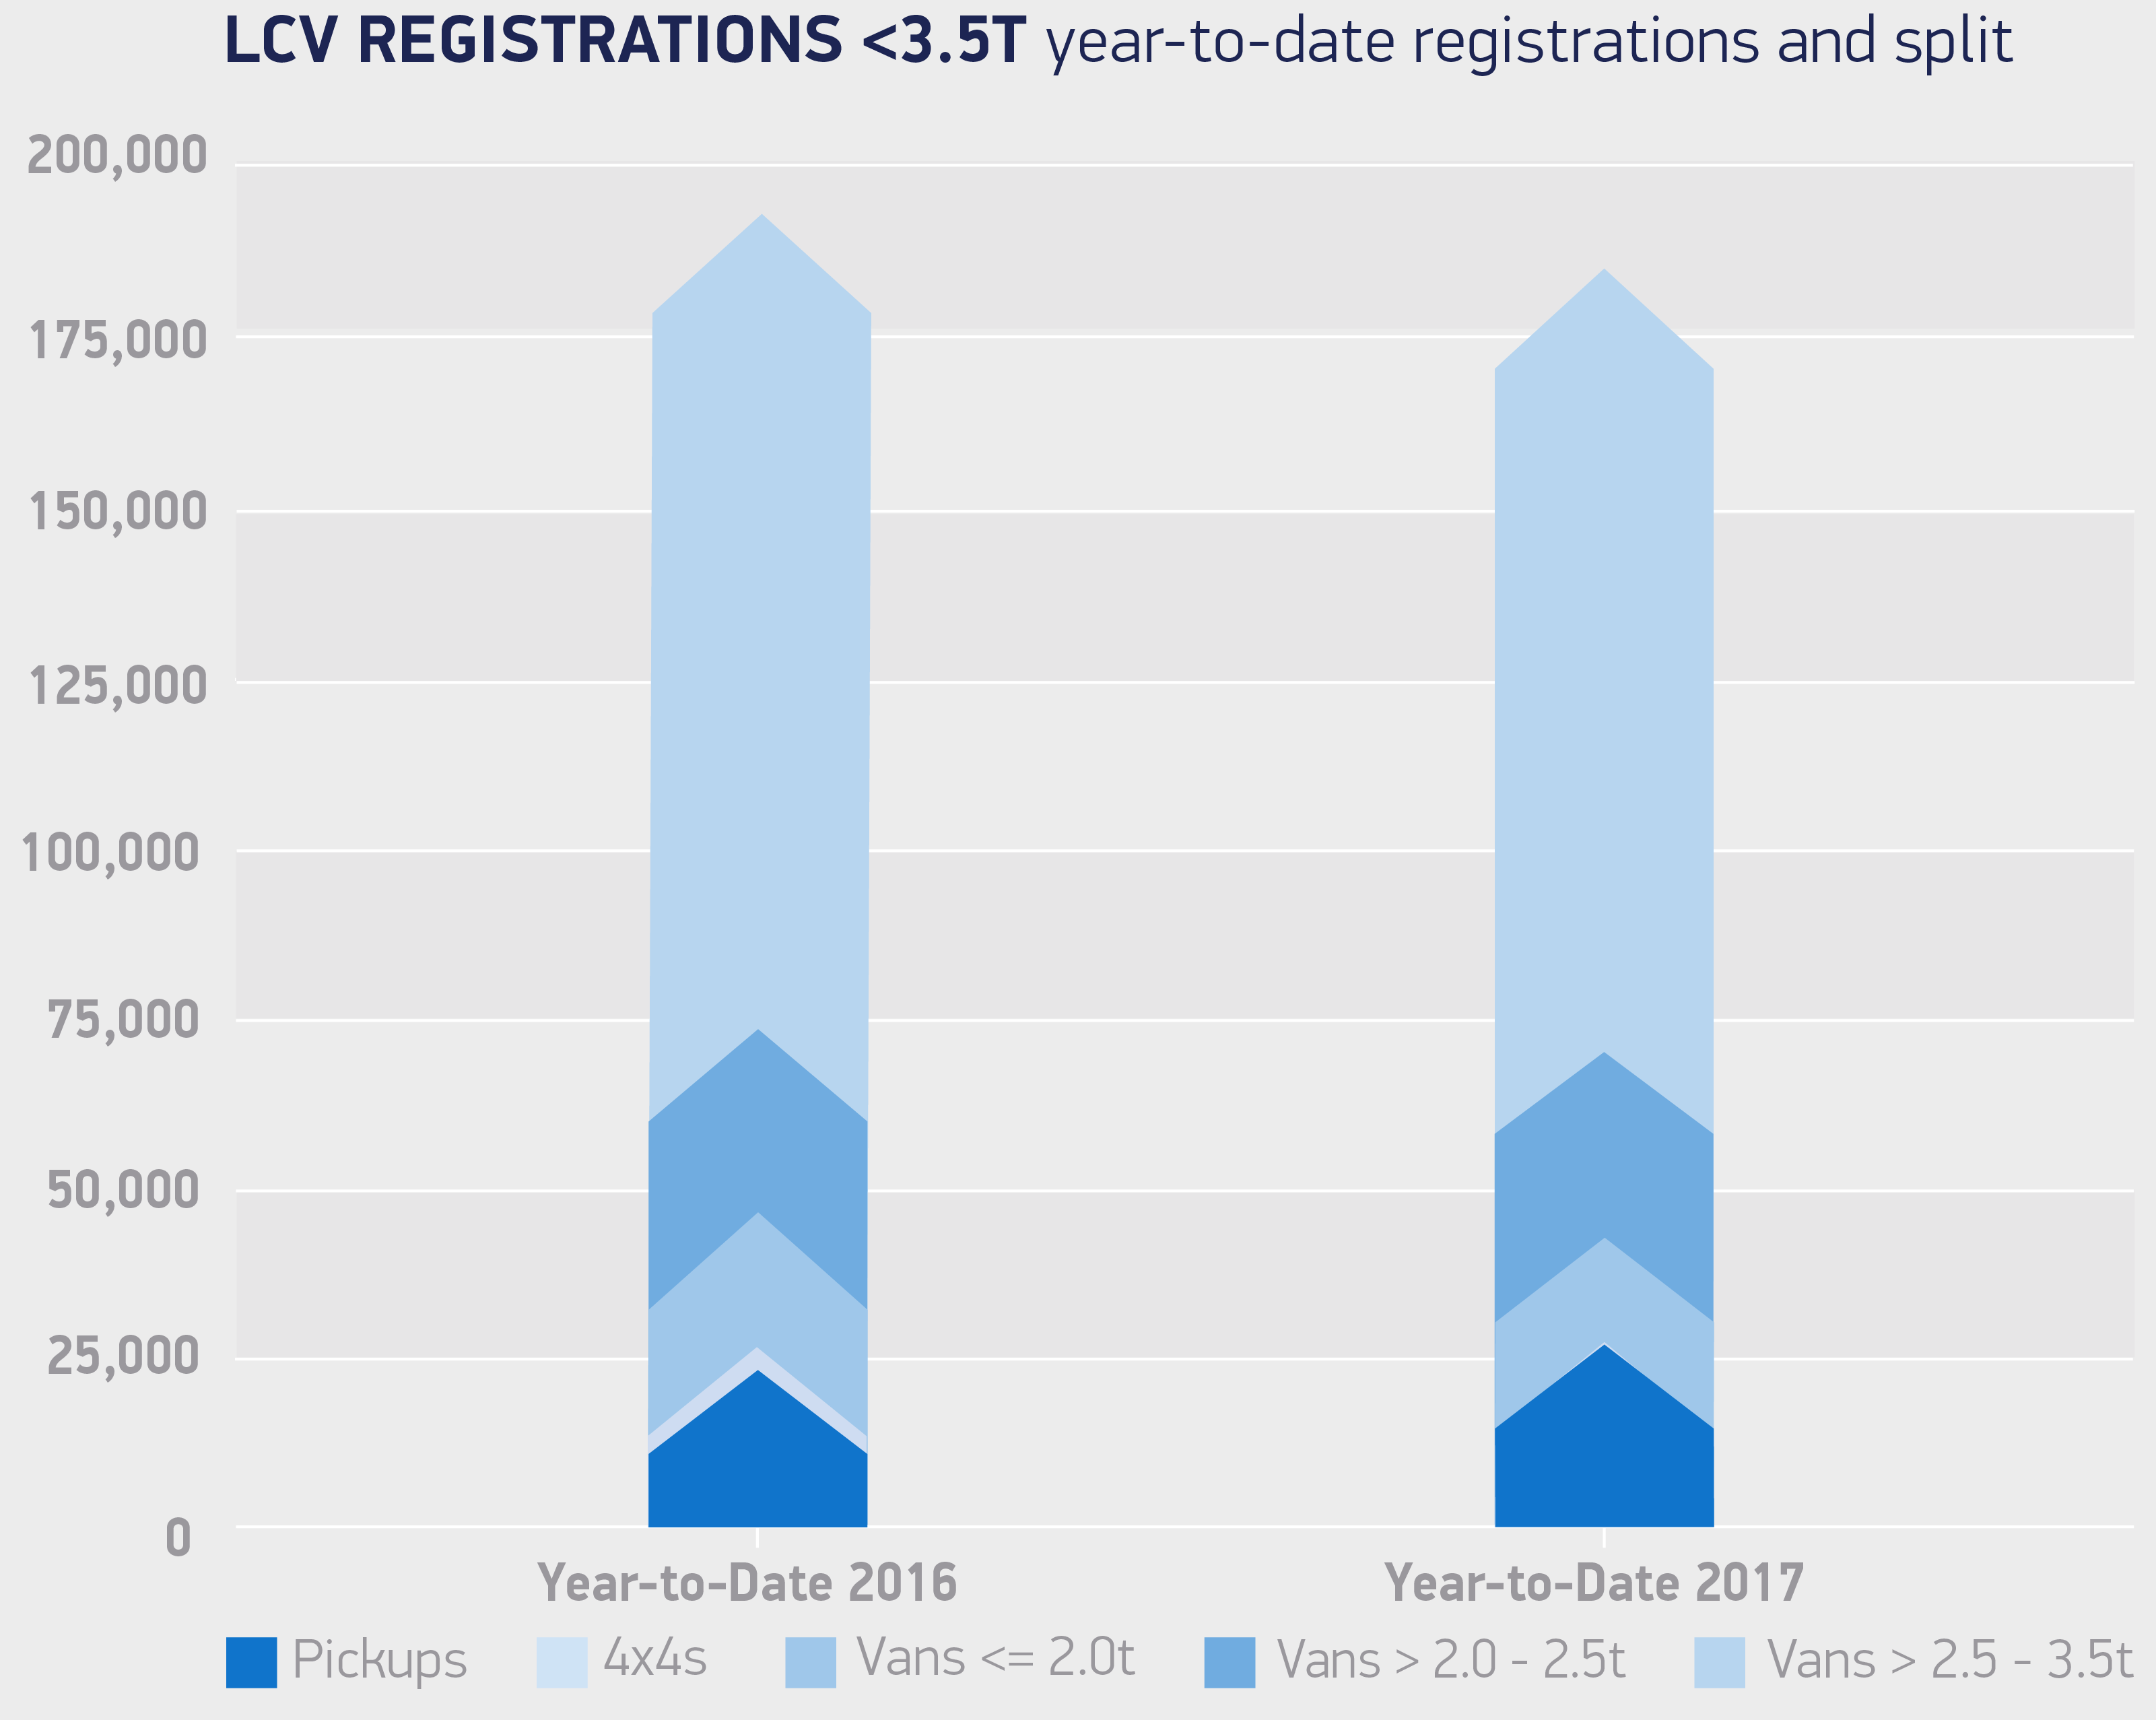 Van-registrations-3-5T-year-to-date-registrations-and-split-Jun-17